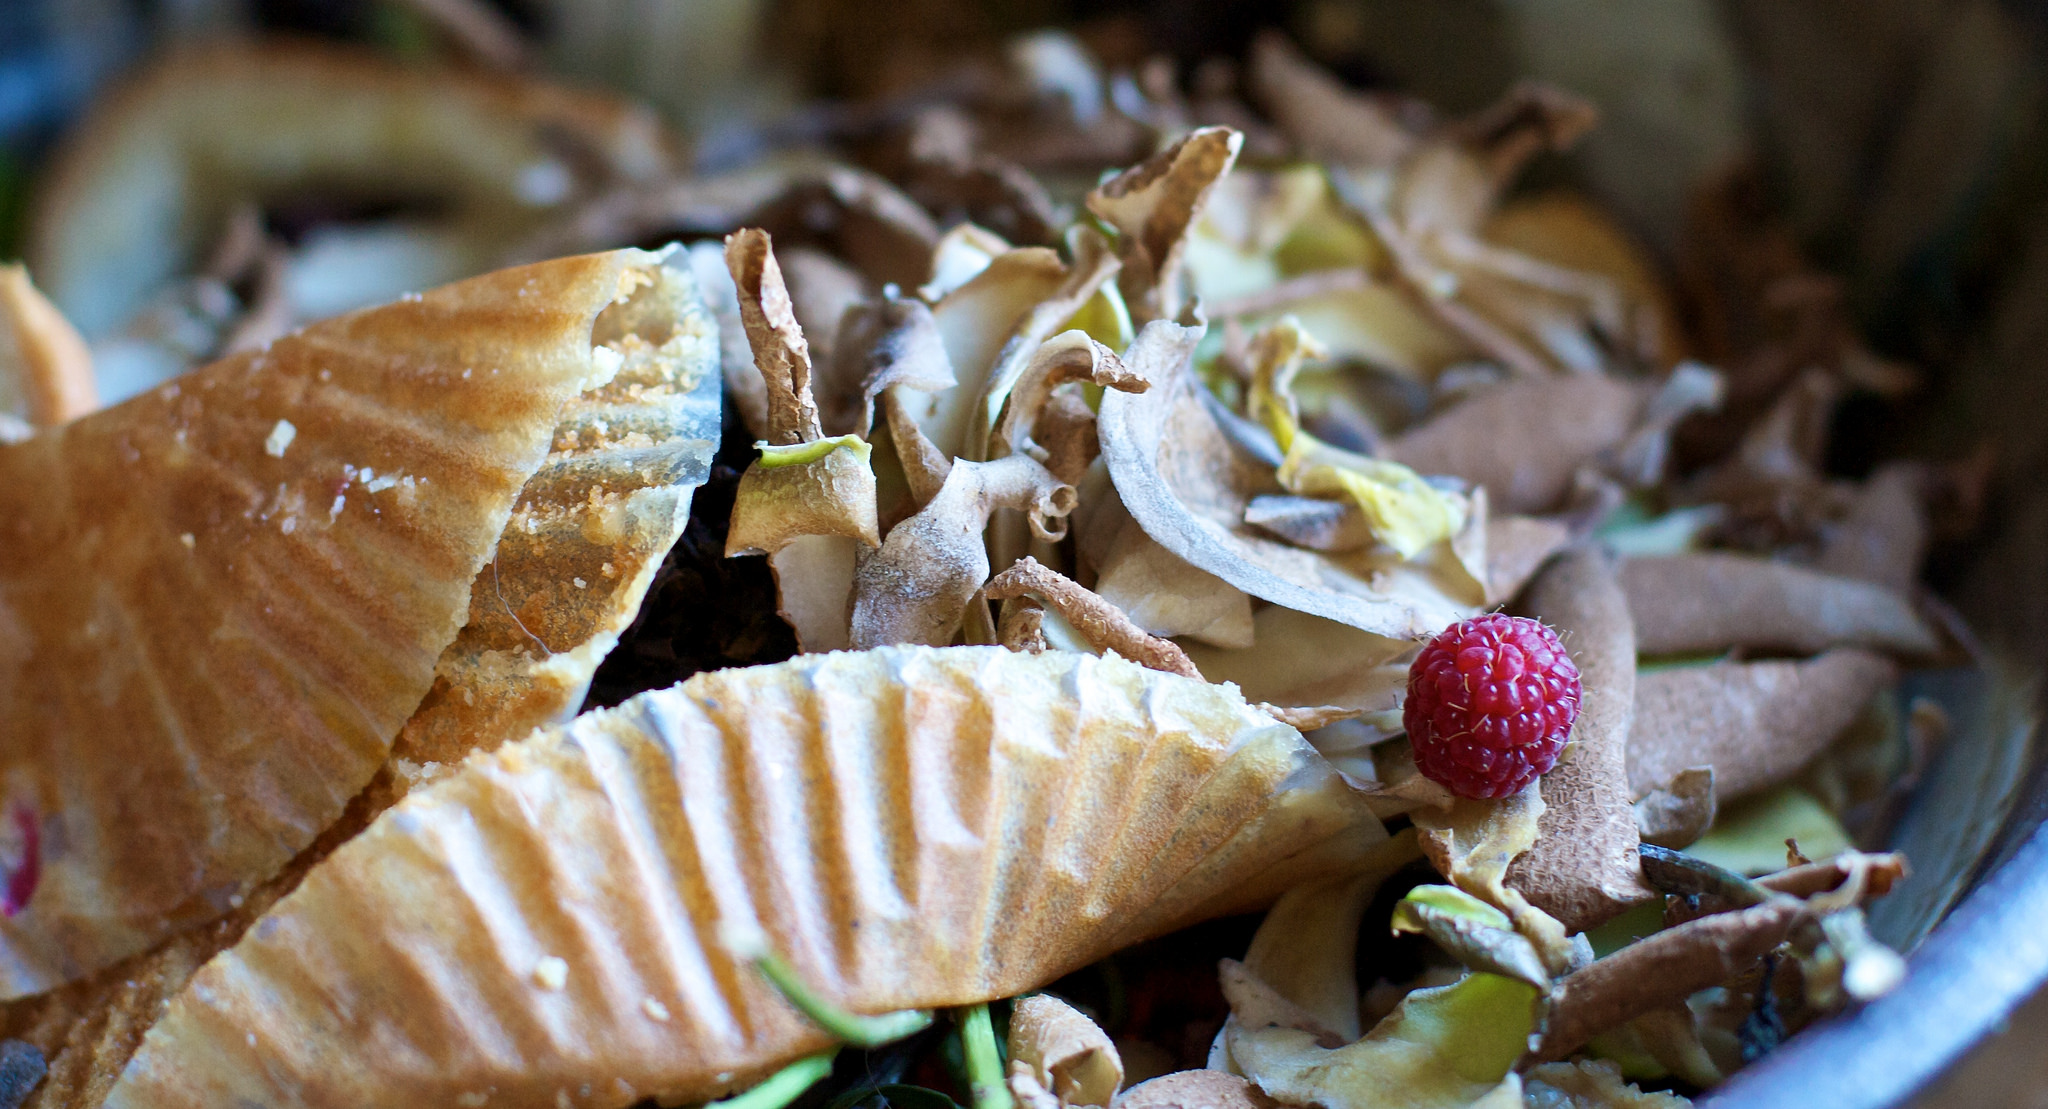 European Lessons On Food Waste